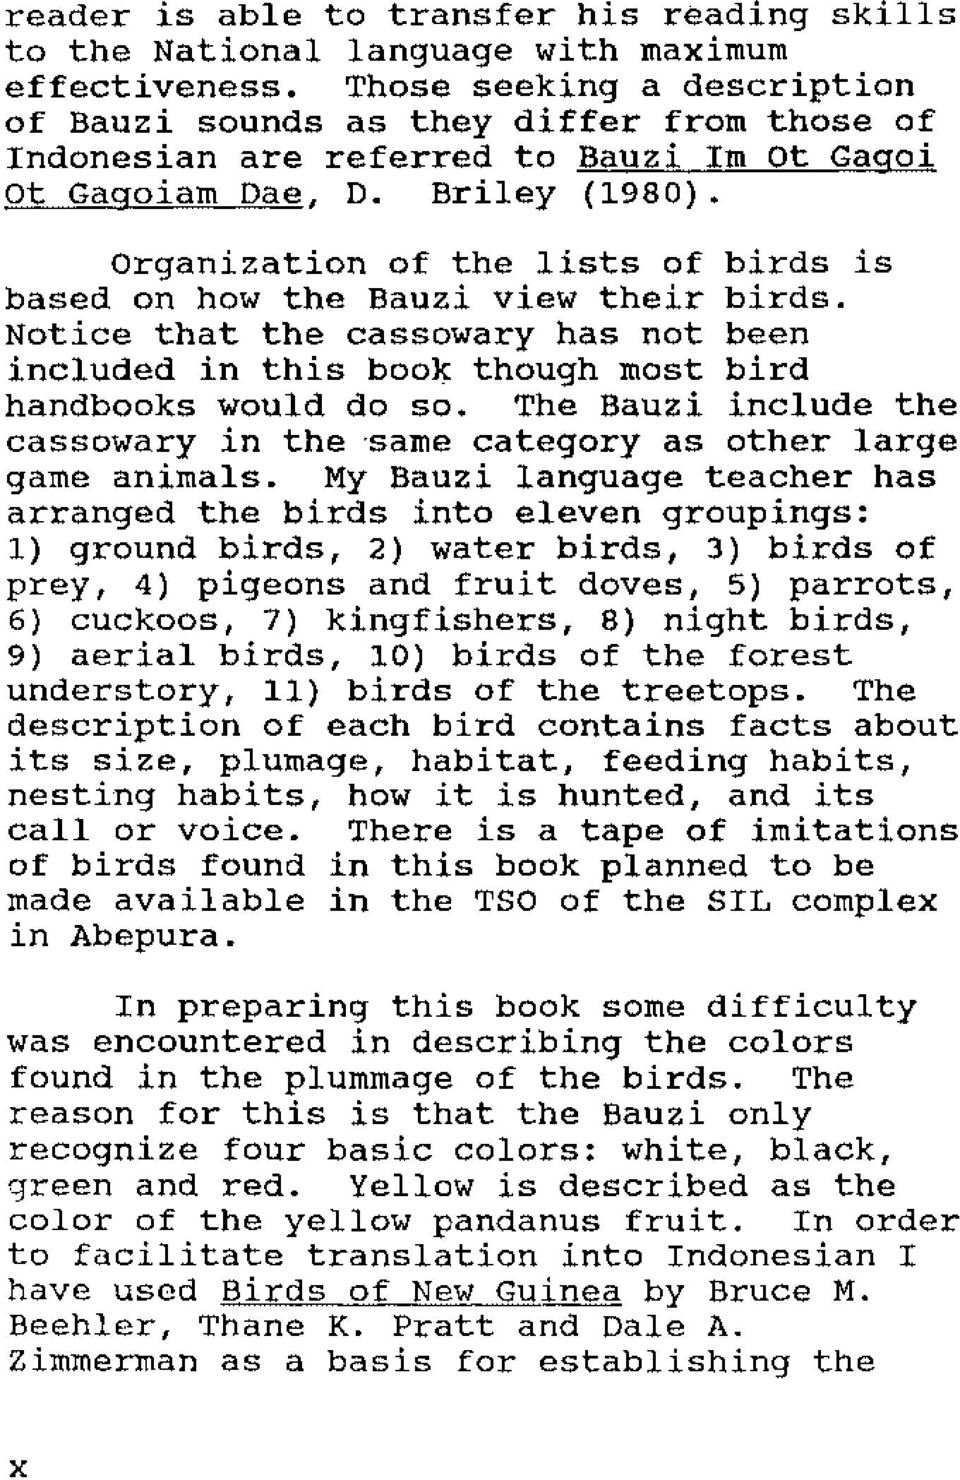 organization of the lists of birds is based on how the Bauzi view their birds. Notice that the cassowary has not been included in this boo~ though most bird handbooks would do so.